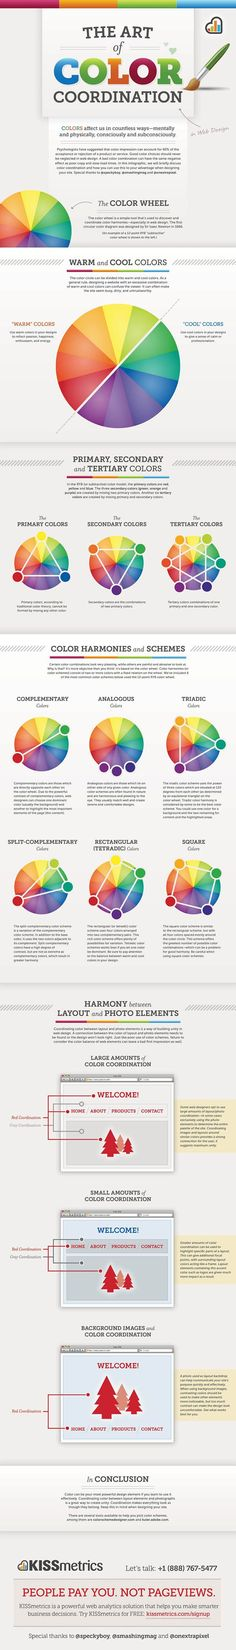 The Art of Color Coordination in Web Design [Infographic]